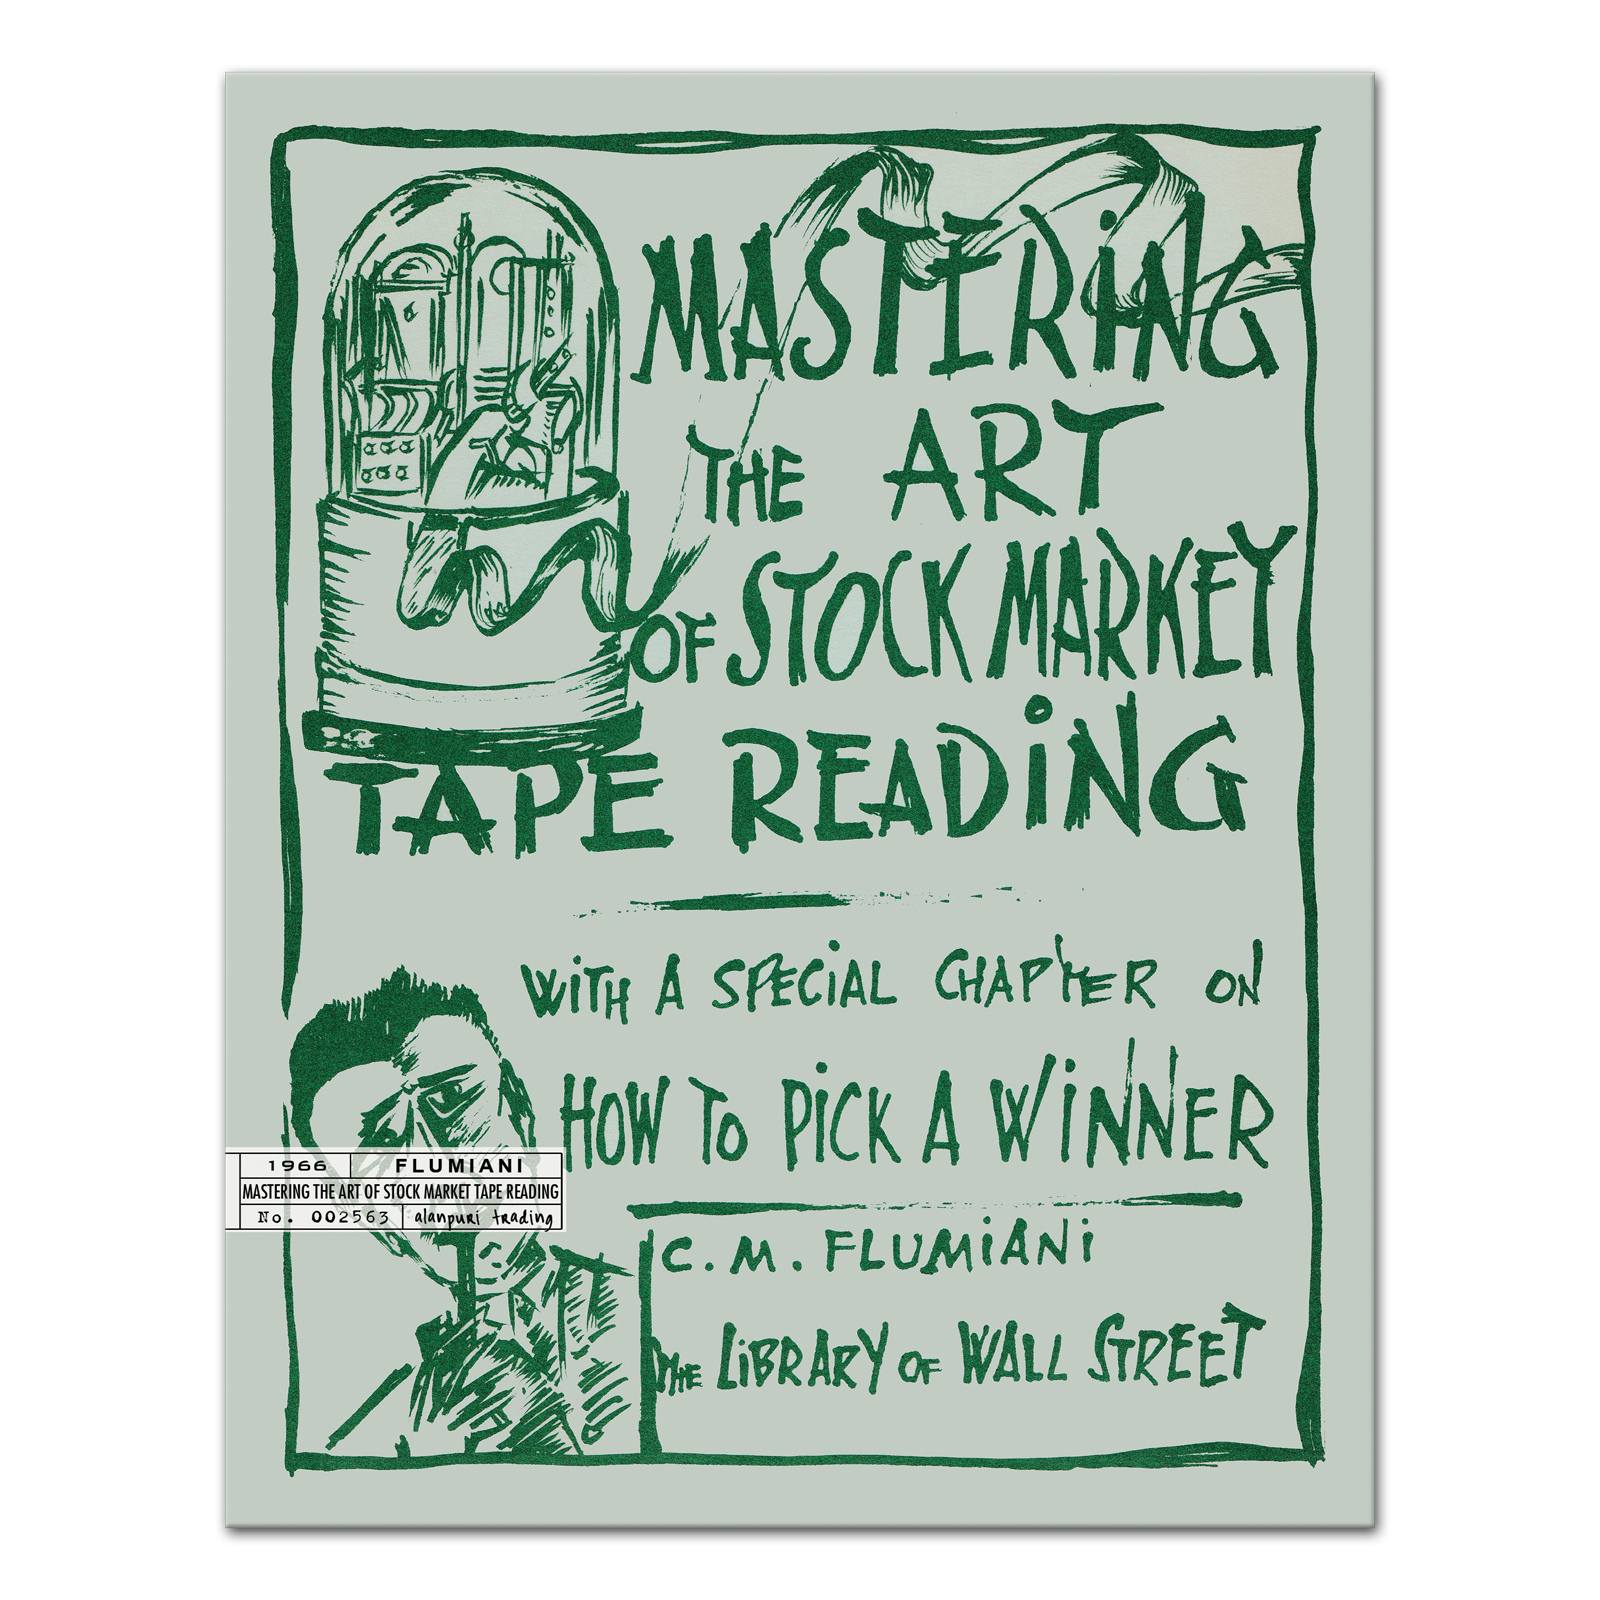 Mastering The Art of Stock Market Tape Reading: with A Special Chapter on How to Pick a Winner by C.M. Flumiani